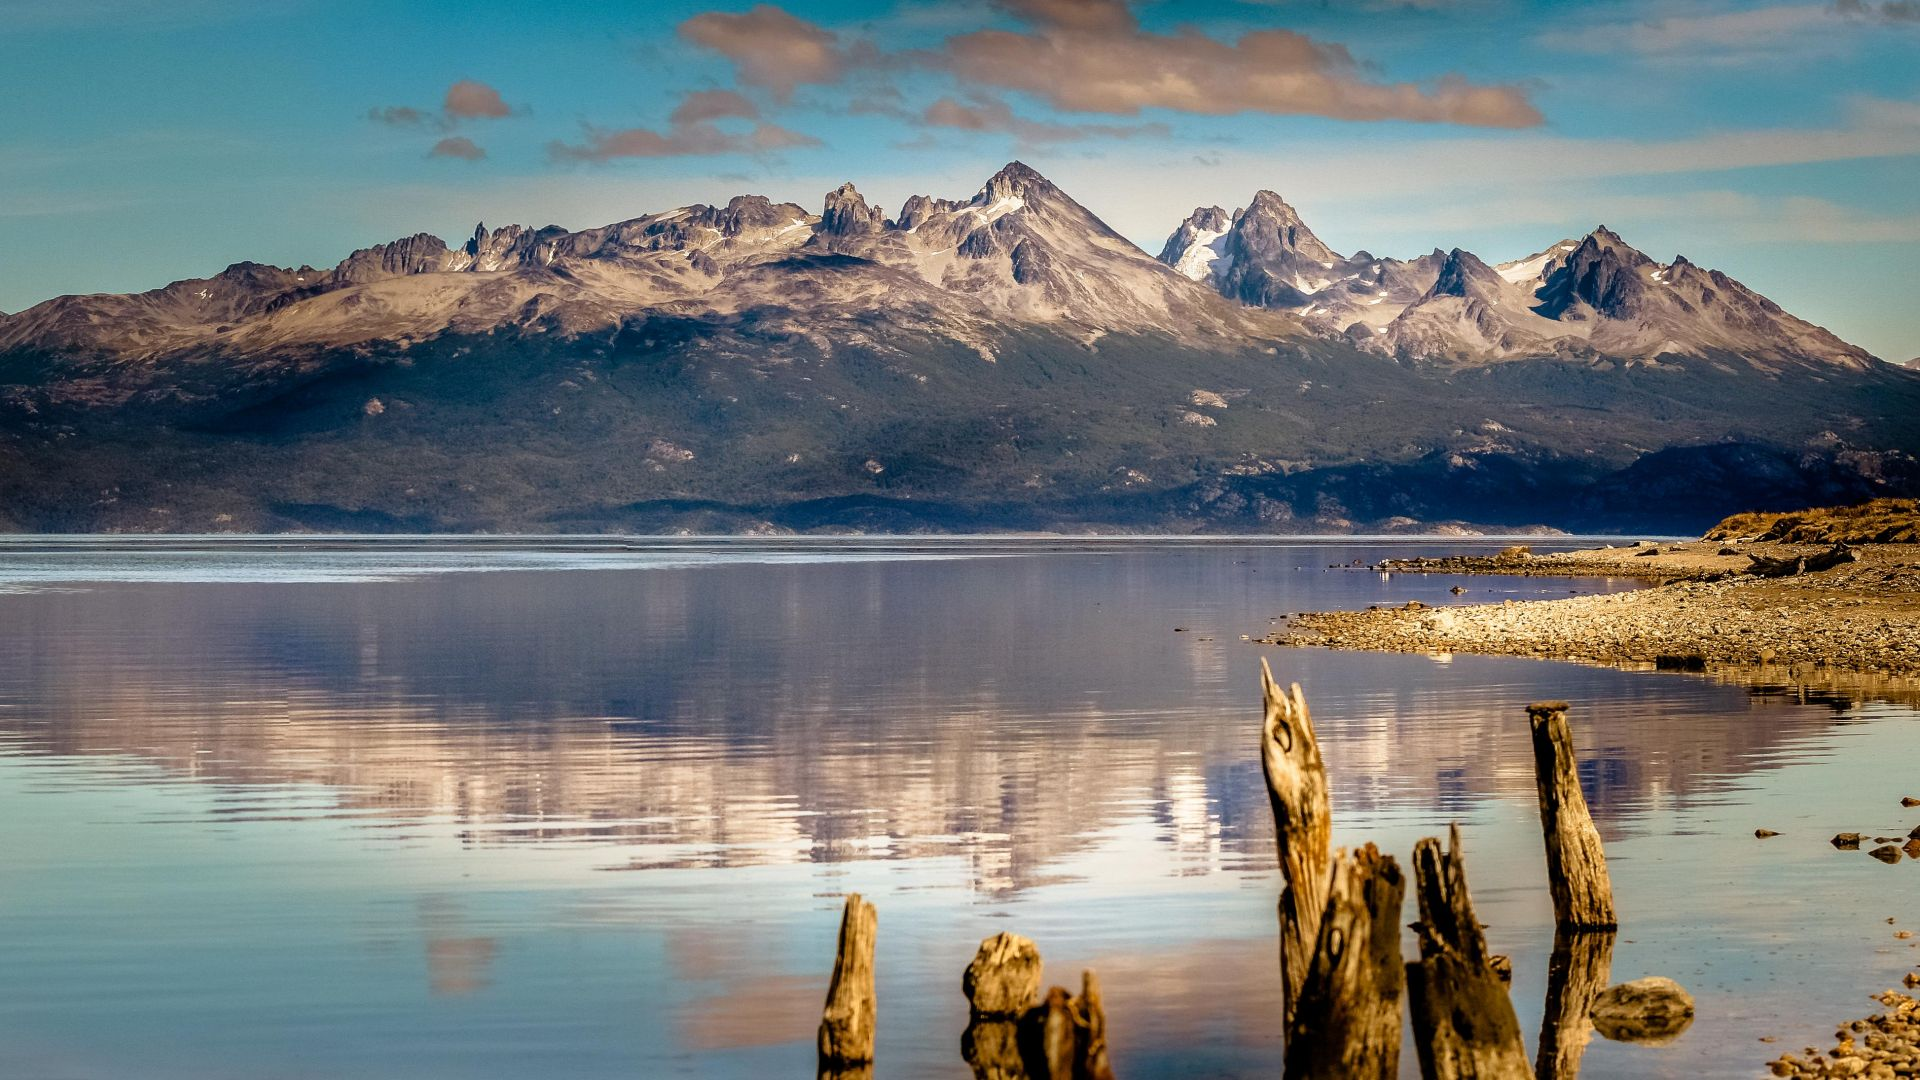 горы, 4k, HD, озеро, море, Аргентина, mountain, 4k, HD wallpaper, lake, sea, Ushuaia, Argentina